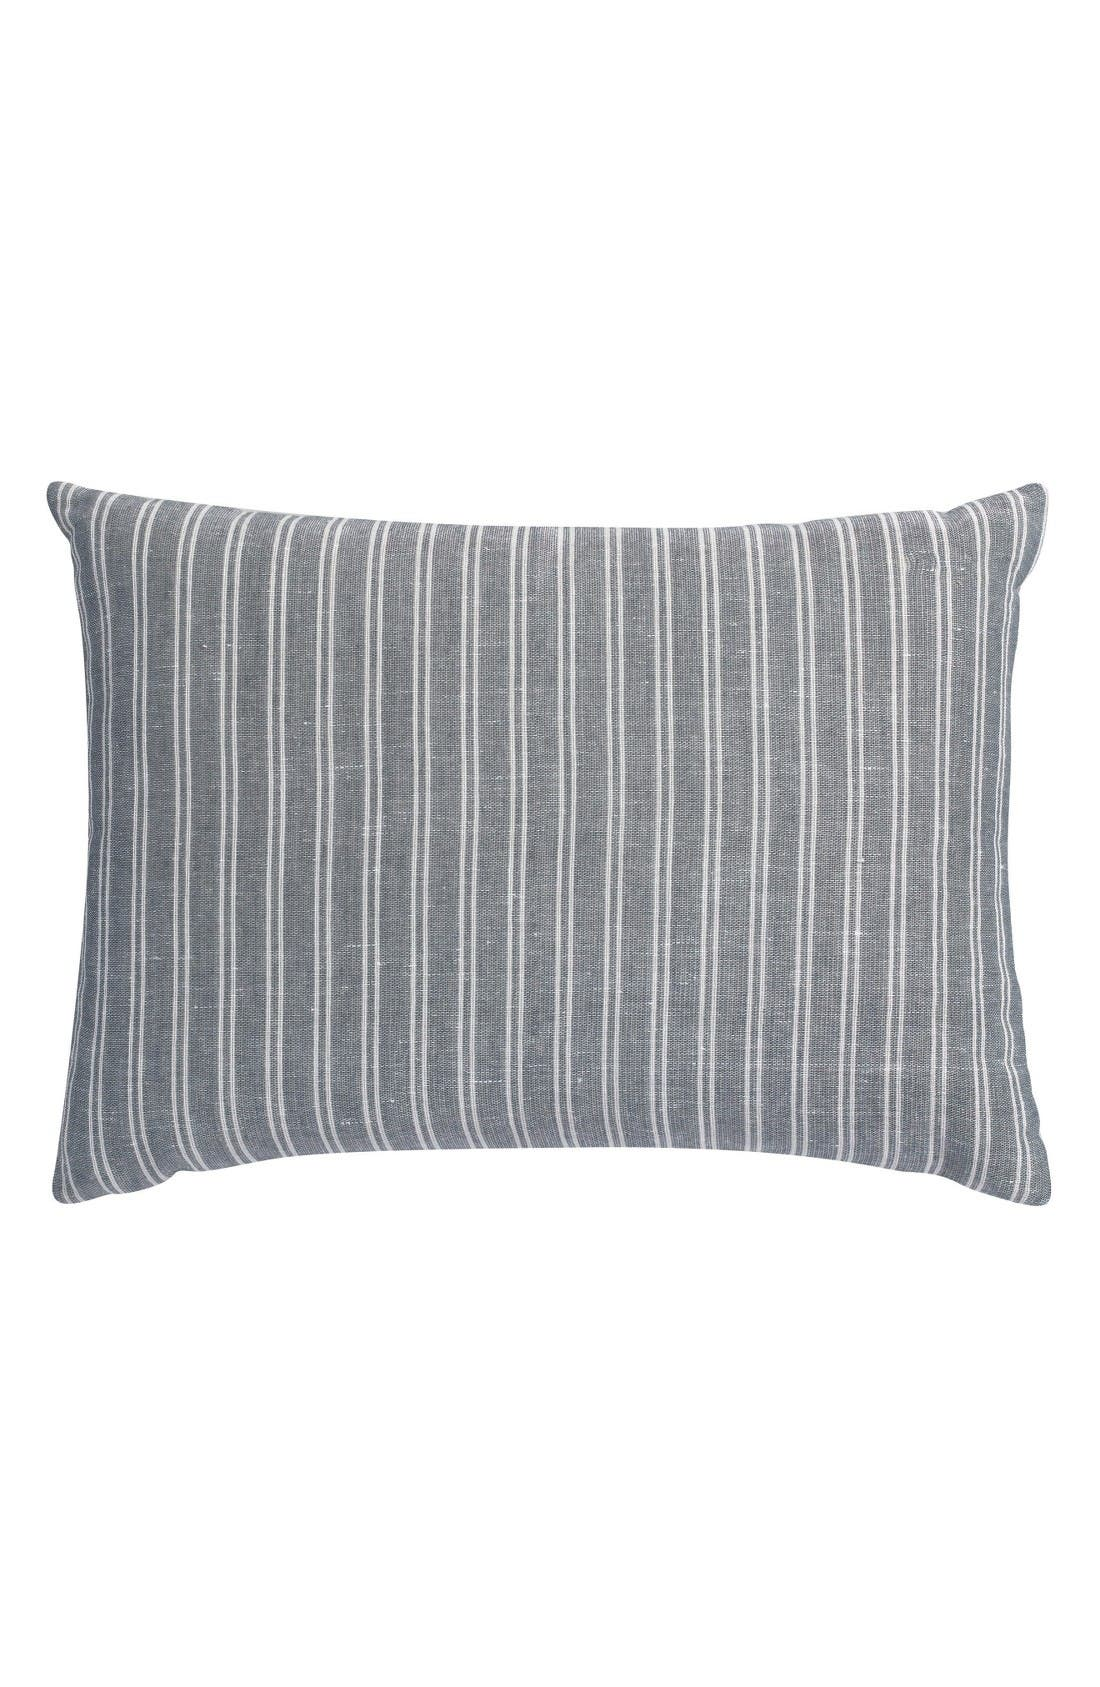 Alternate Image 1 Selected - Portico Park Ave Stripe Organic Cotton Accent Pillow